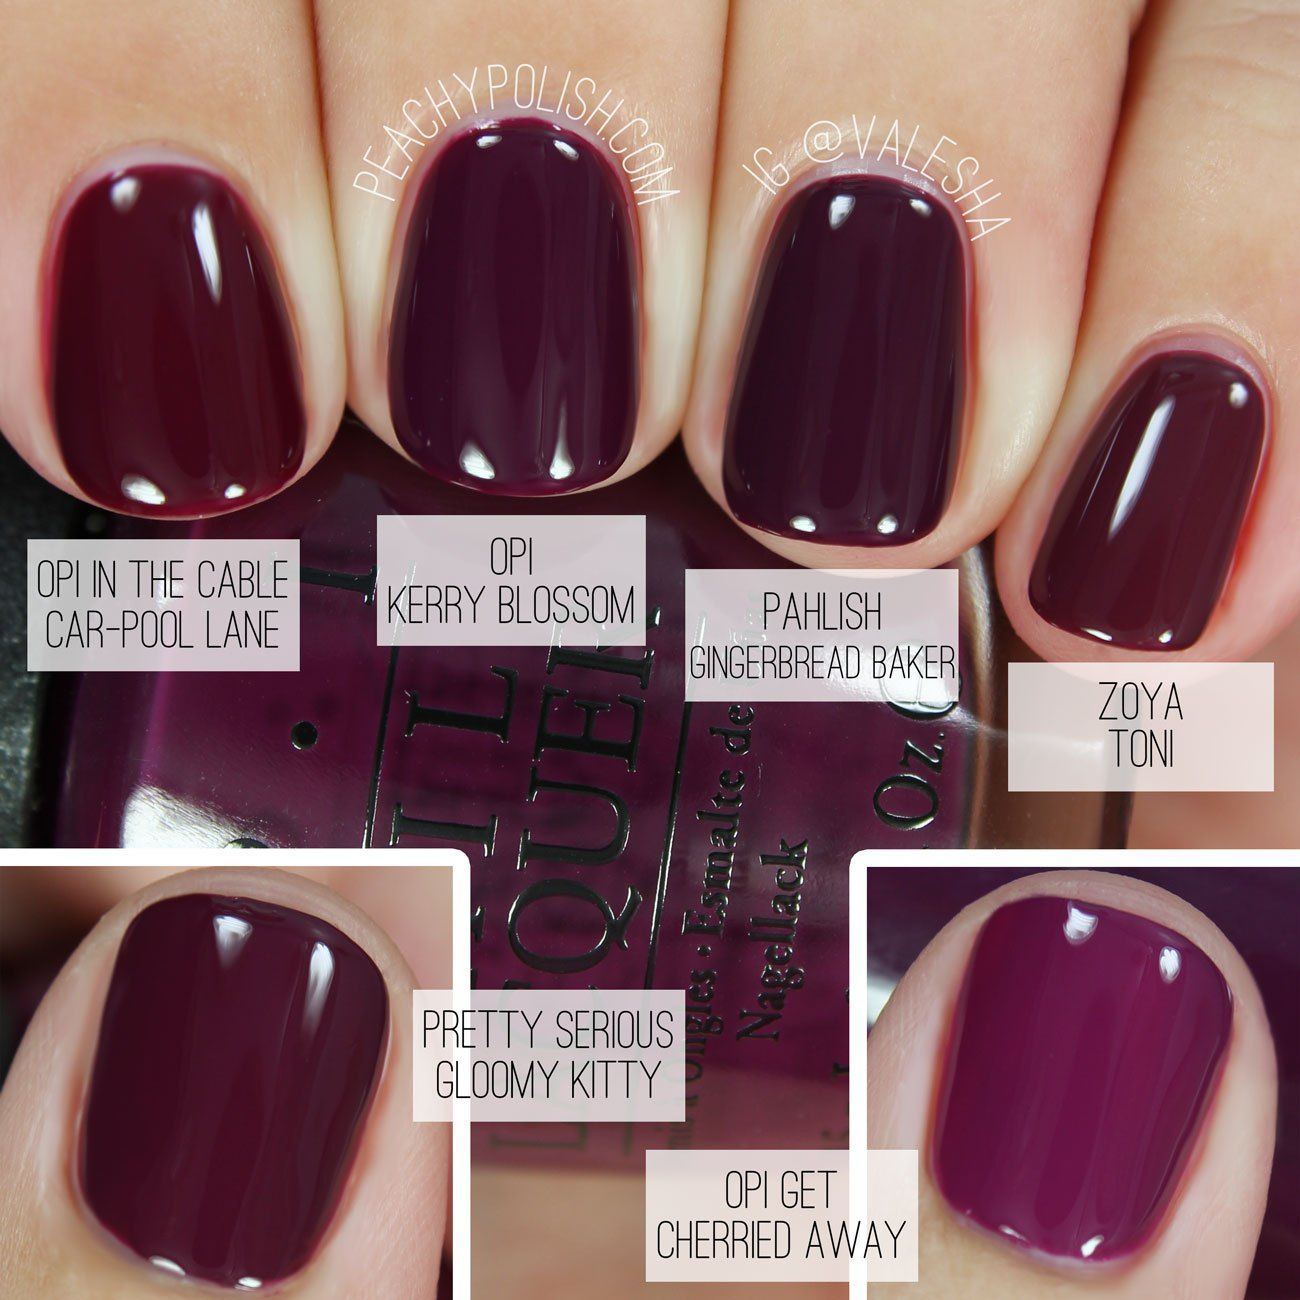 OPI Kerry Blossom | Washington D.C. Collection Comparisons | Peachy ...